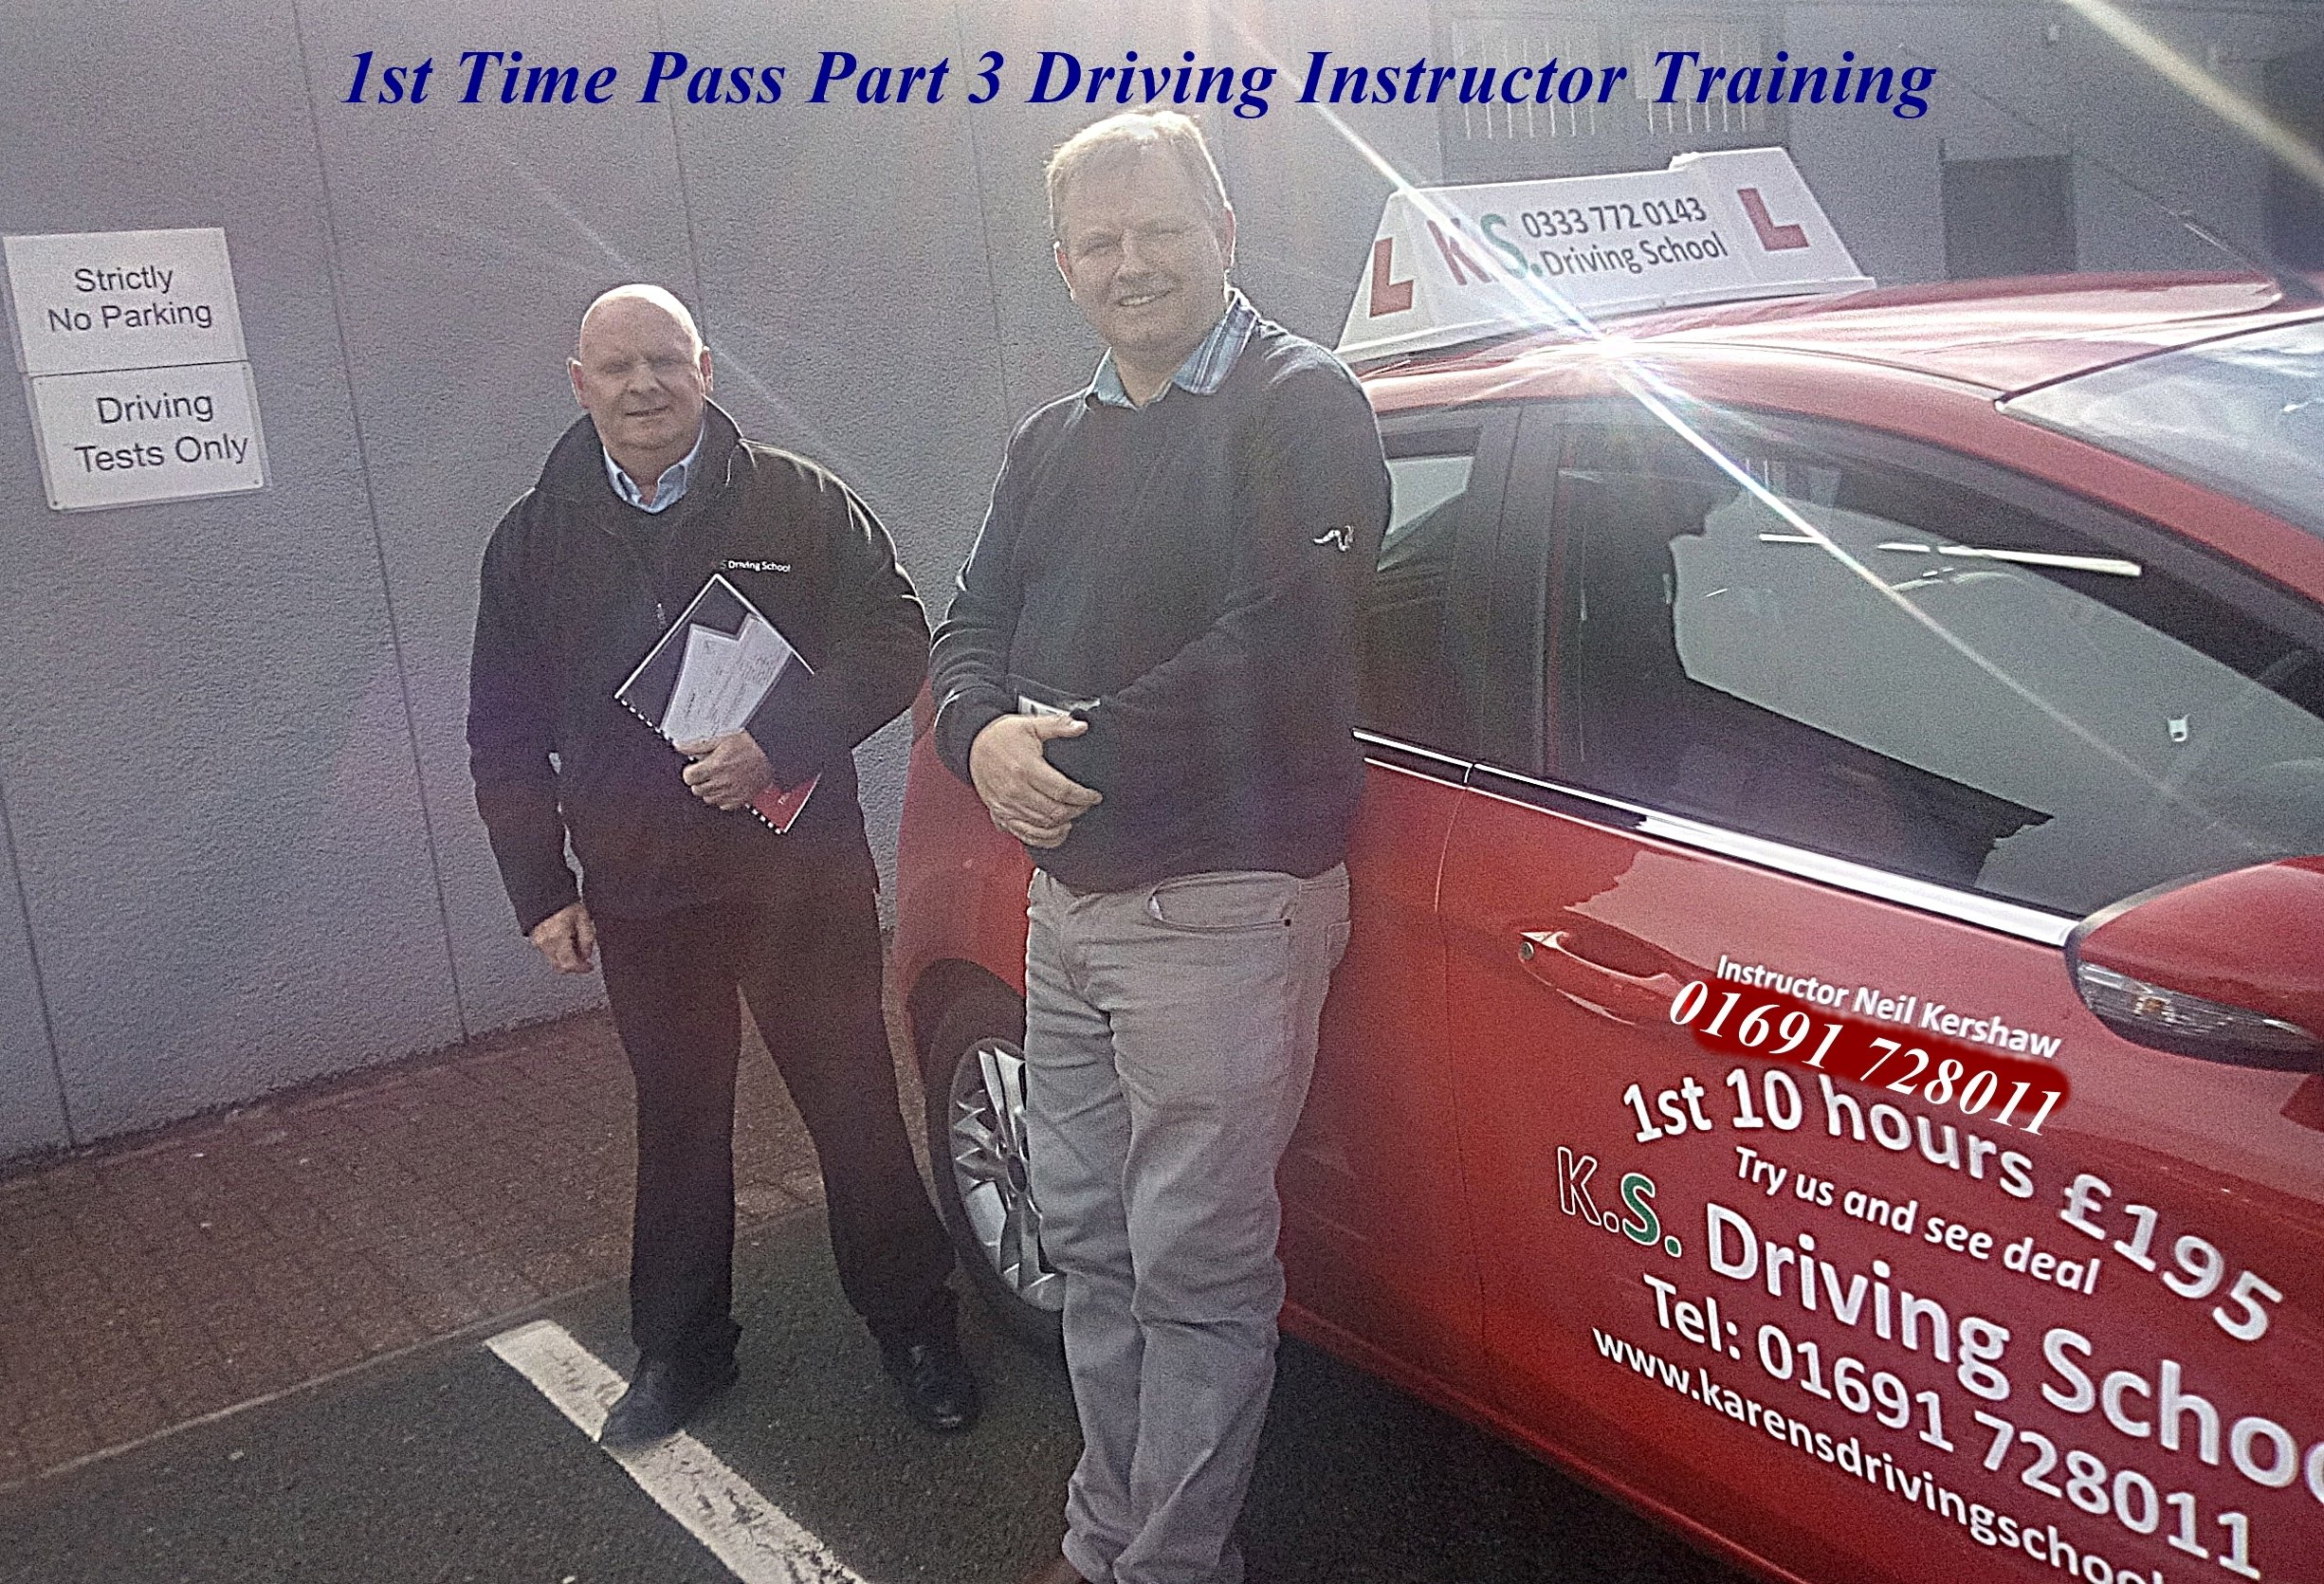 1st Time PASS Part 3 Driver Instructor Training